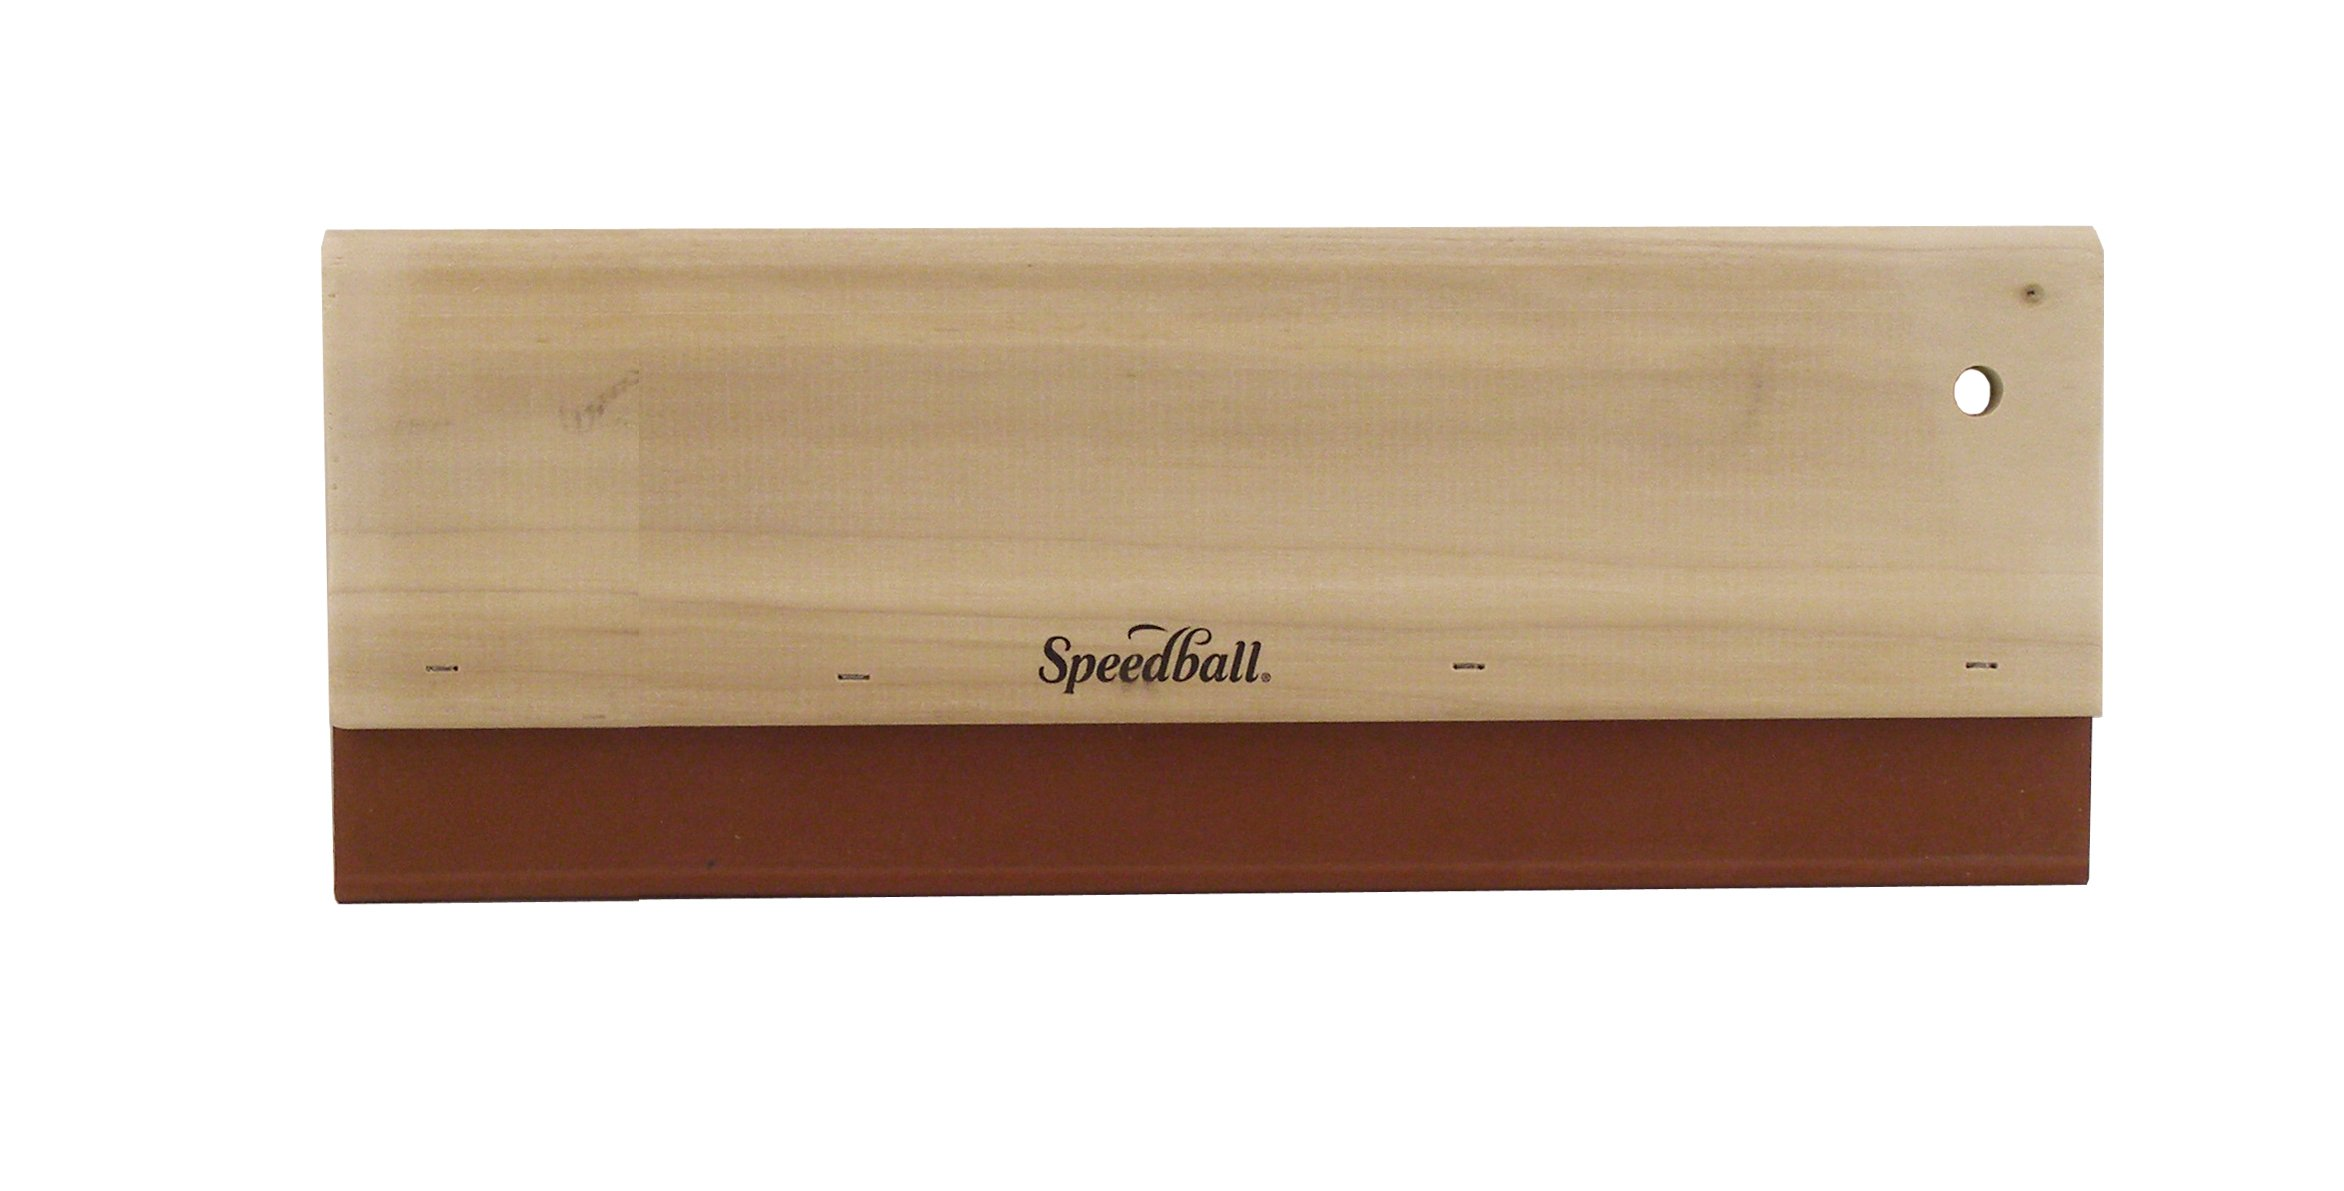 Speedball 12-Inch Fabric Squeegee for Screen Printing by Speedball